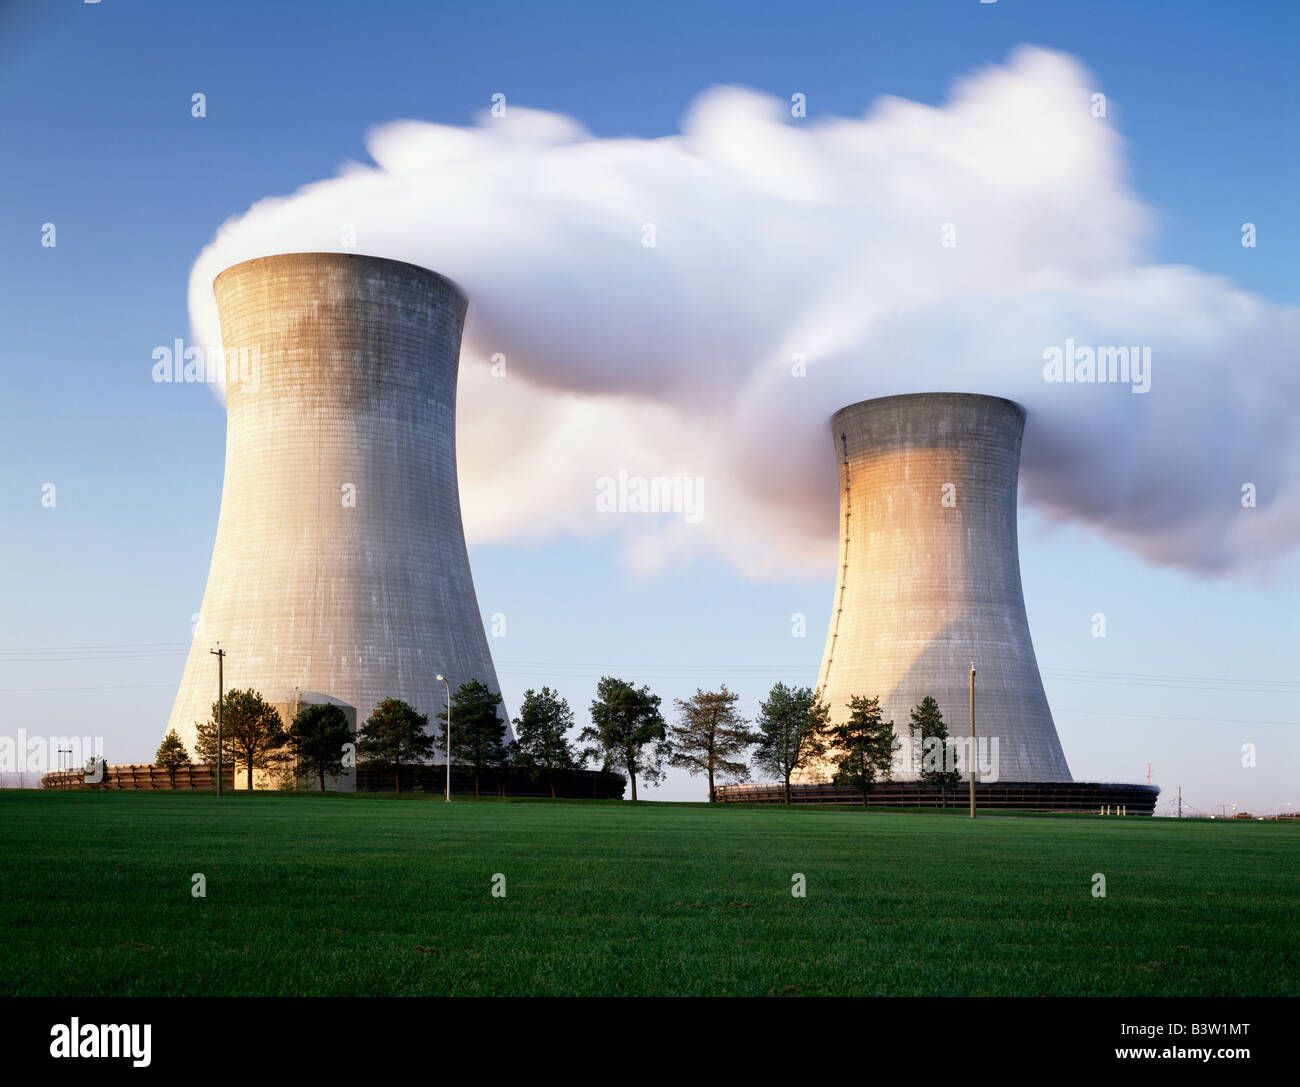 STEAM AND COOLING TOWERS OF A NUCLEAR POWER PLANT Stock Photo